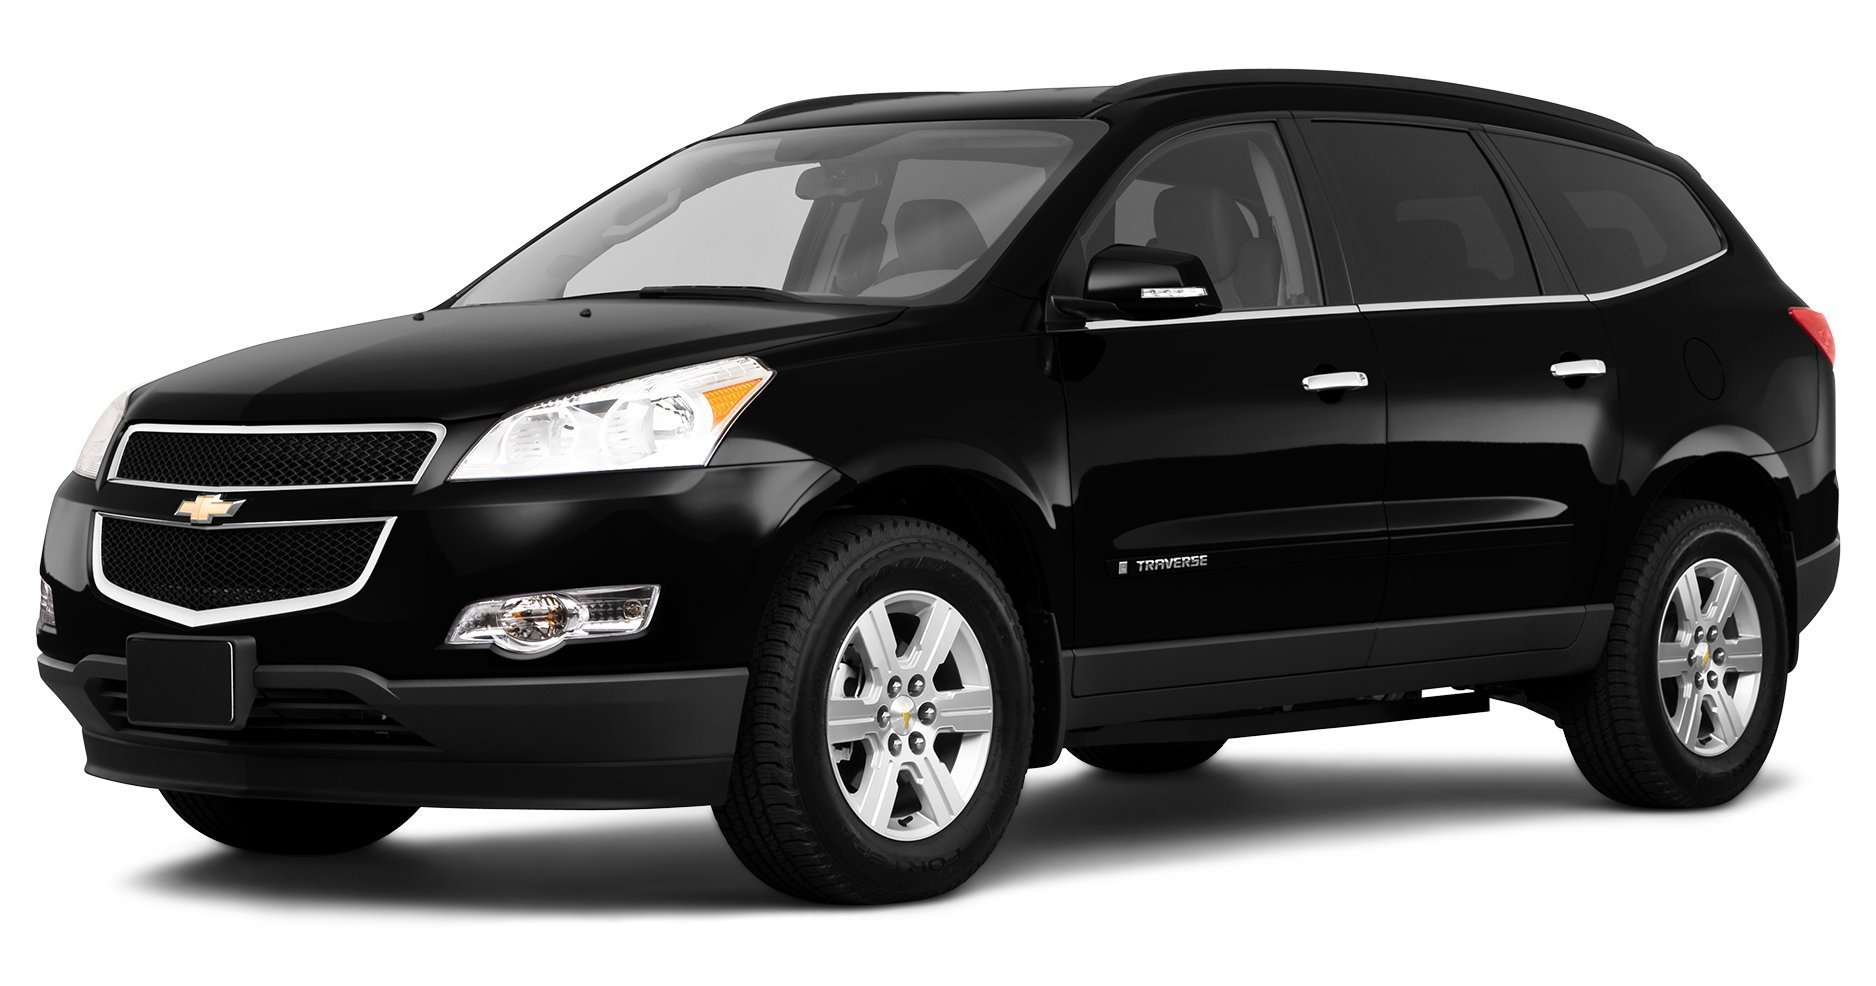 2010 Subaru Tribeca Reviews Images And Specs Vehicles 1989 Gl Fuel Filter Location Chevrolet Traverse Lt W 2lt Option Package All Wheel Drive 4 Door